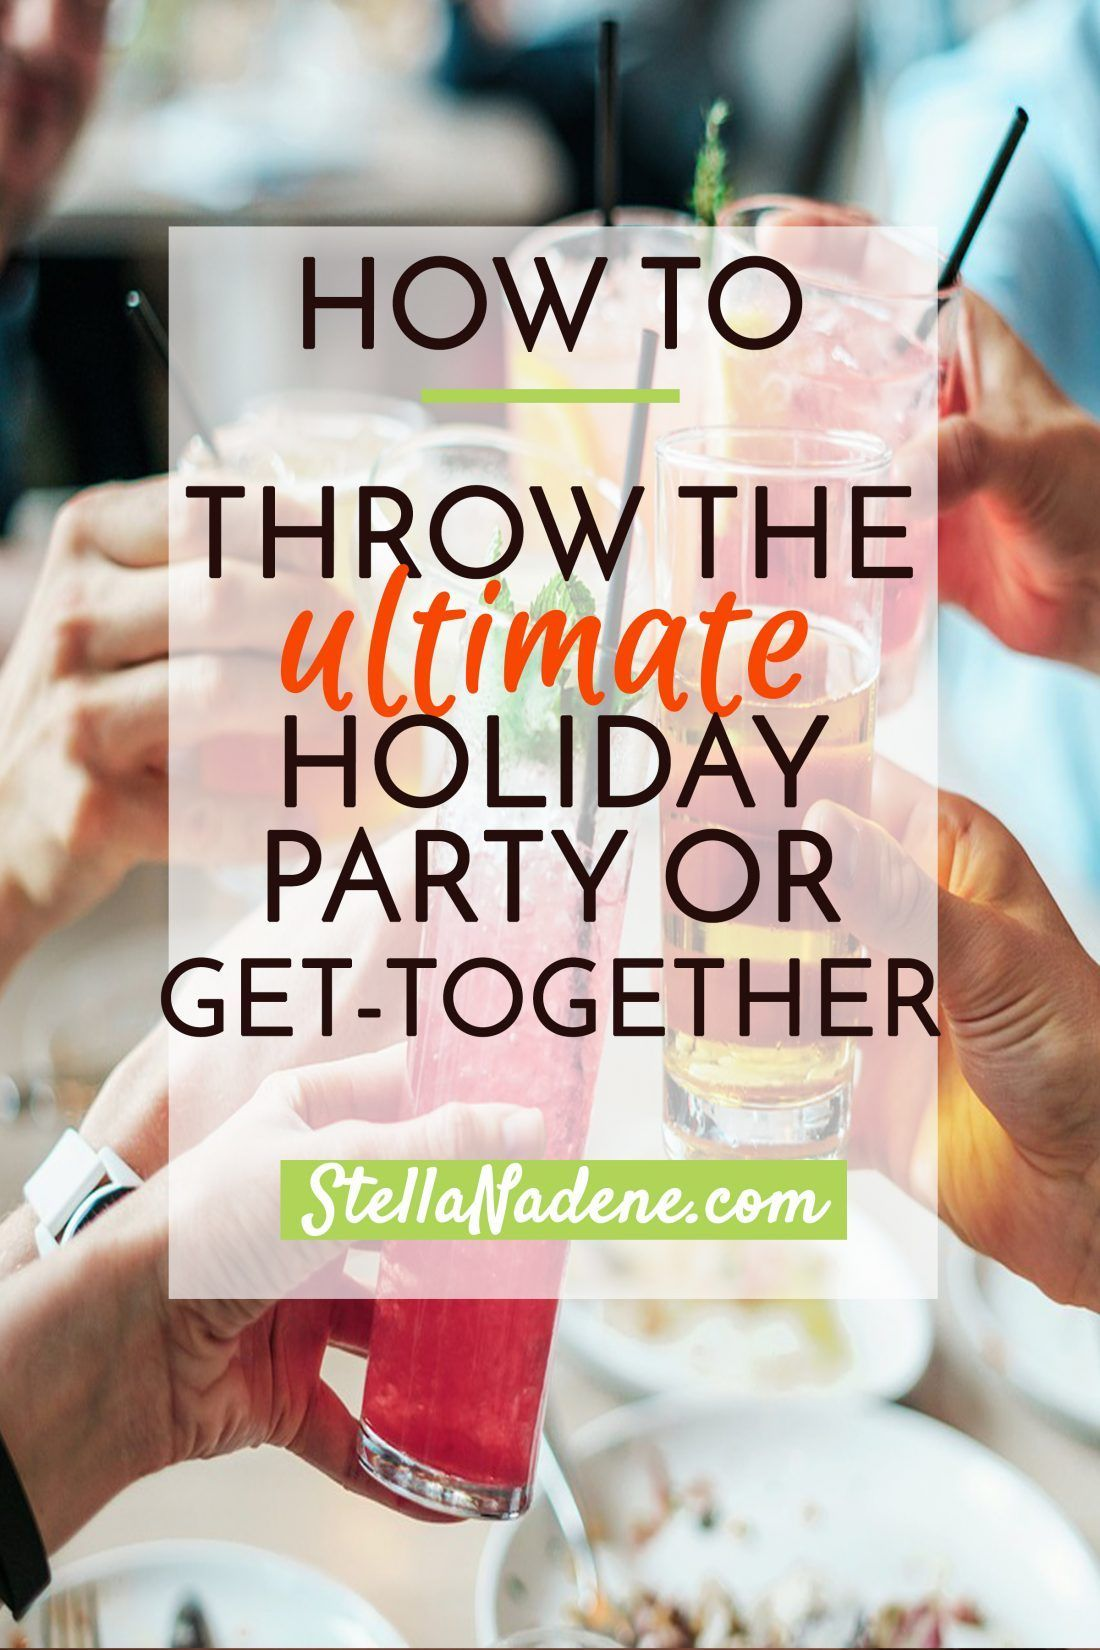 How to Throw the Ultimate Holiday Party or GetTogether